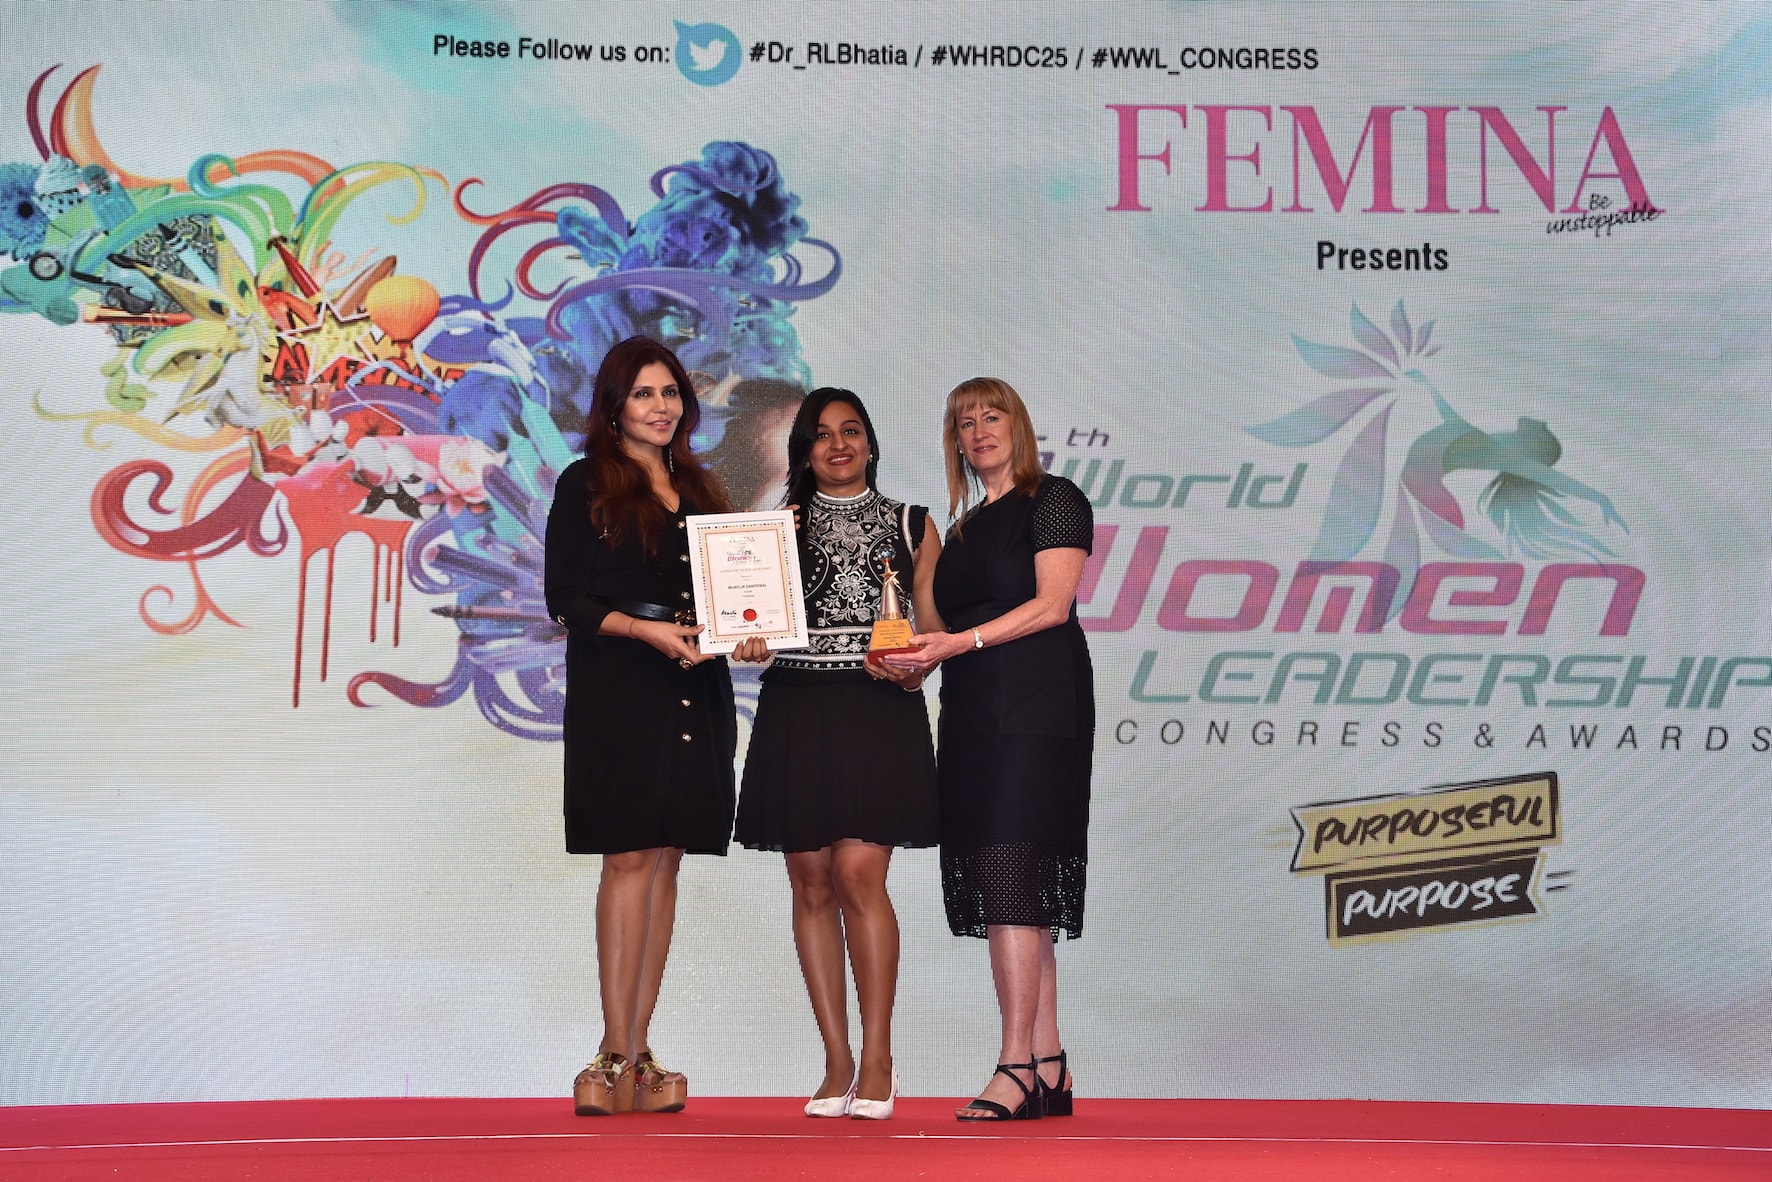 Femina Award won by Munmun Ganeriwal